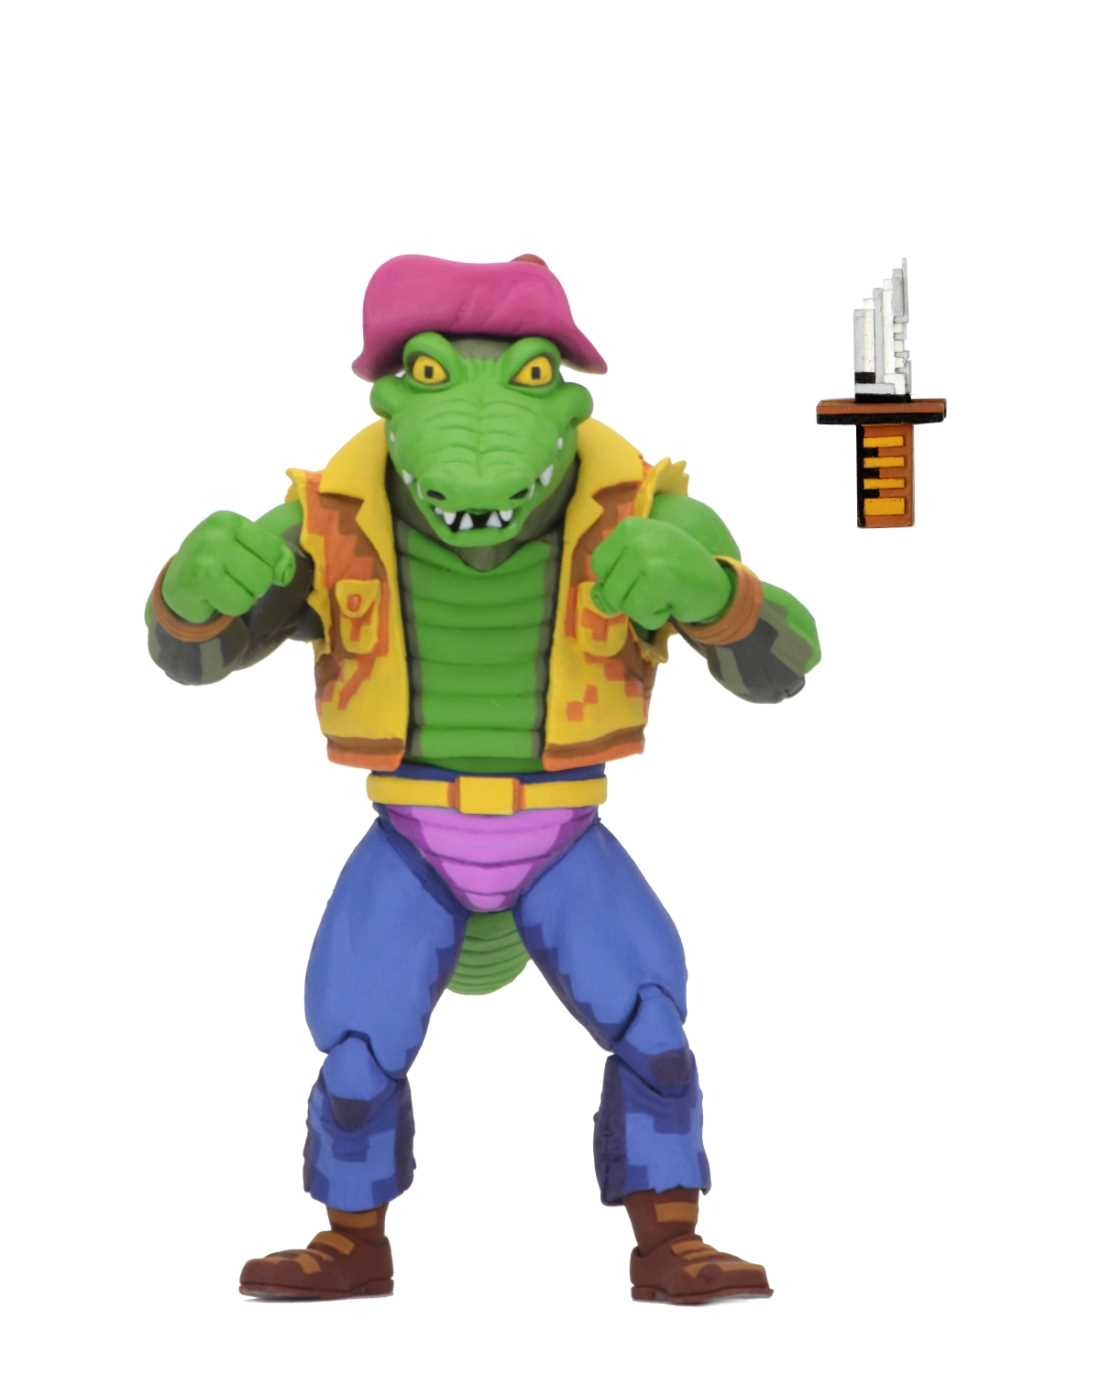 NECA to Release 'TMNT: Turtles In Time' Series 2 Figures in July 2021